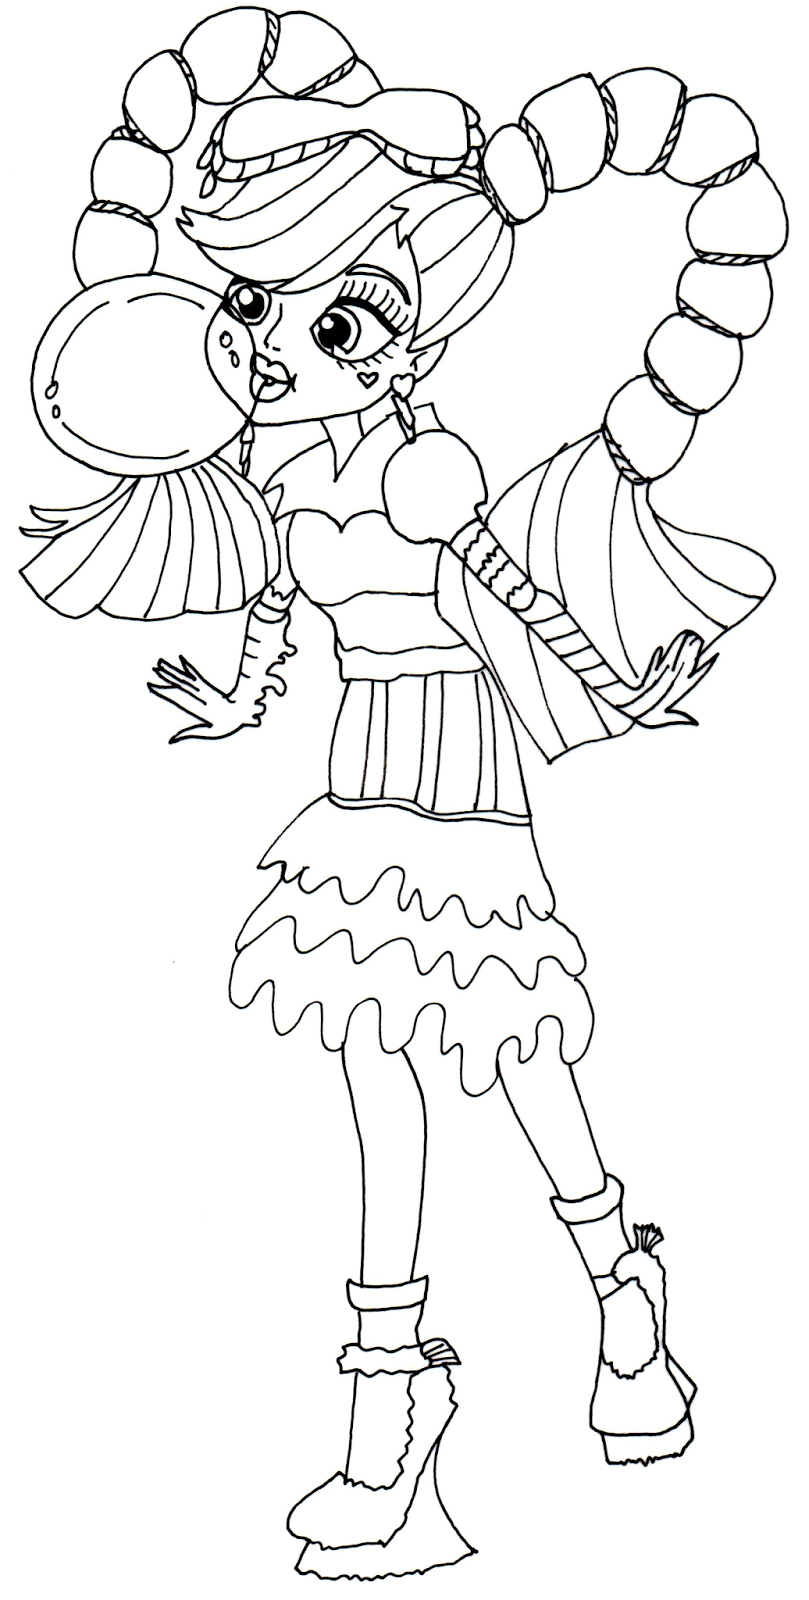 Massif image intended for free printable monster high coloring pages